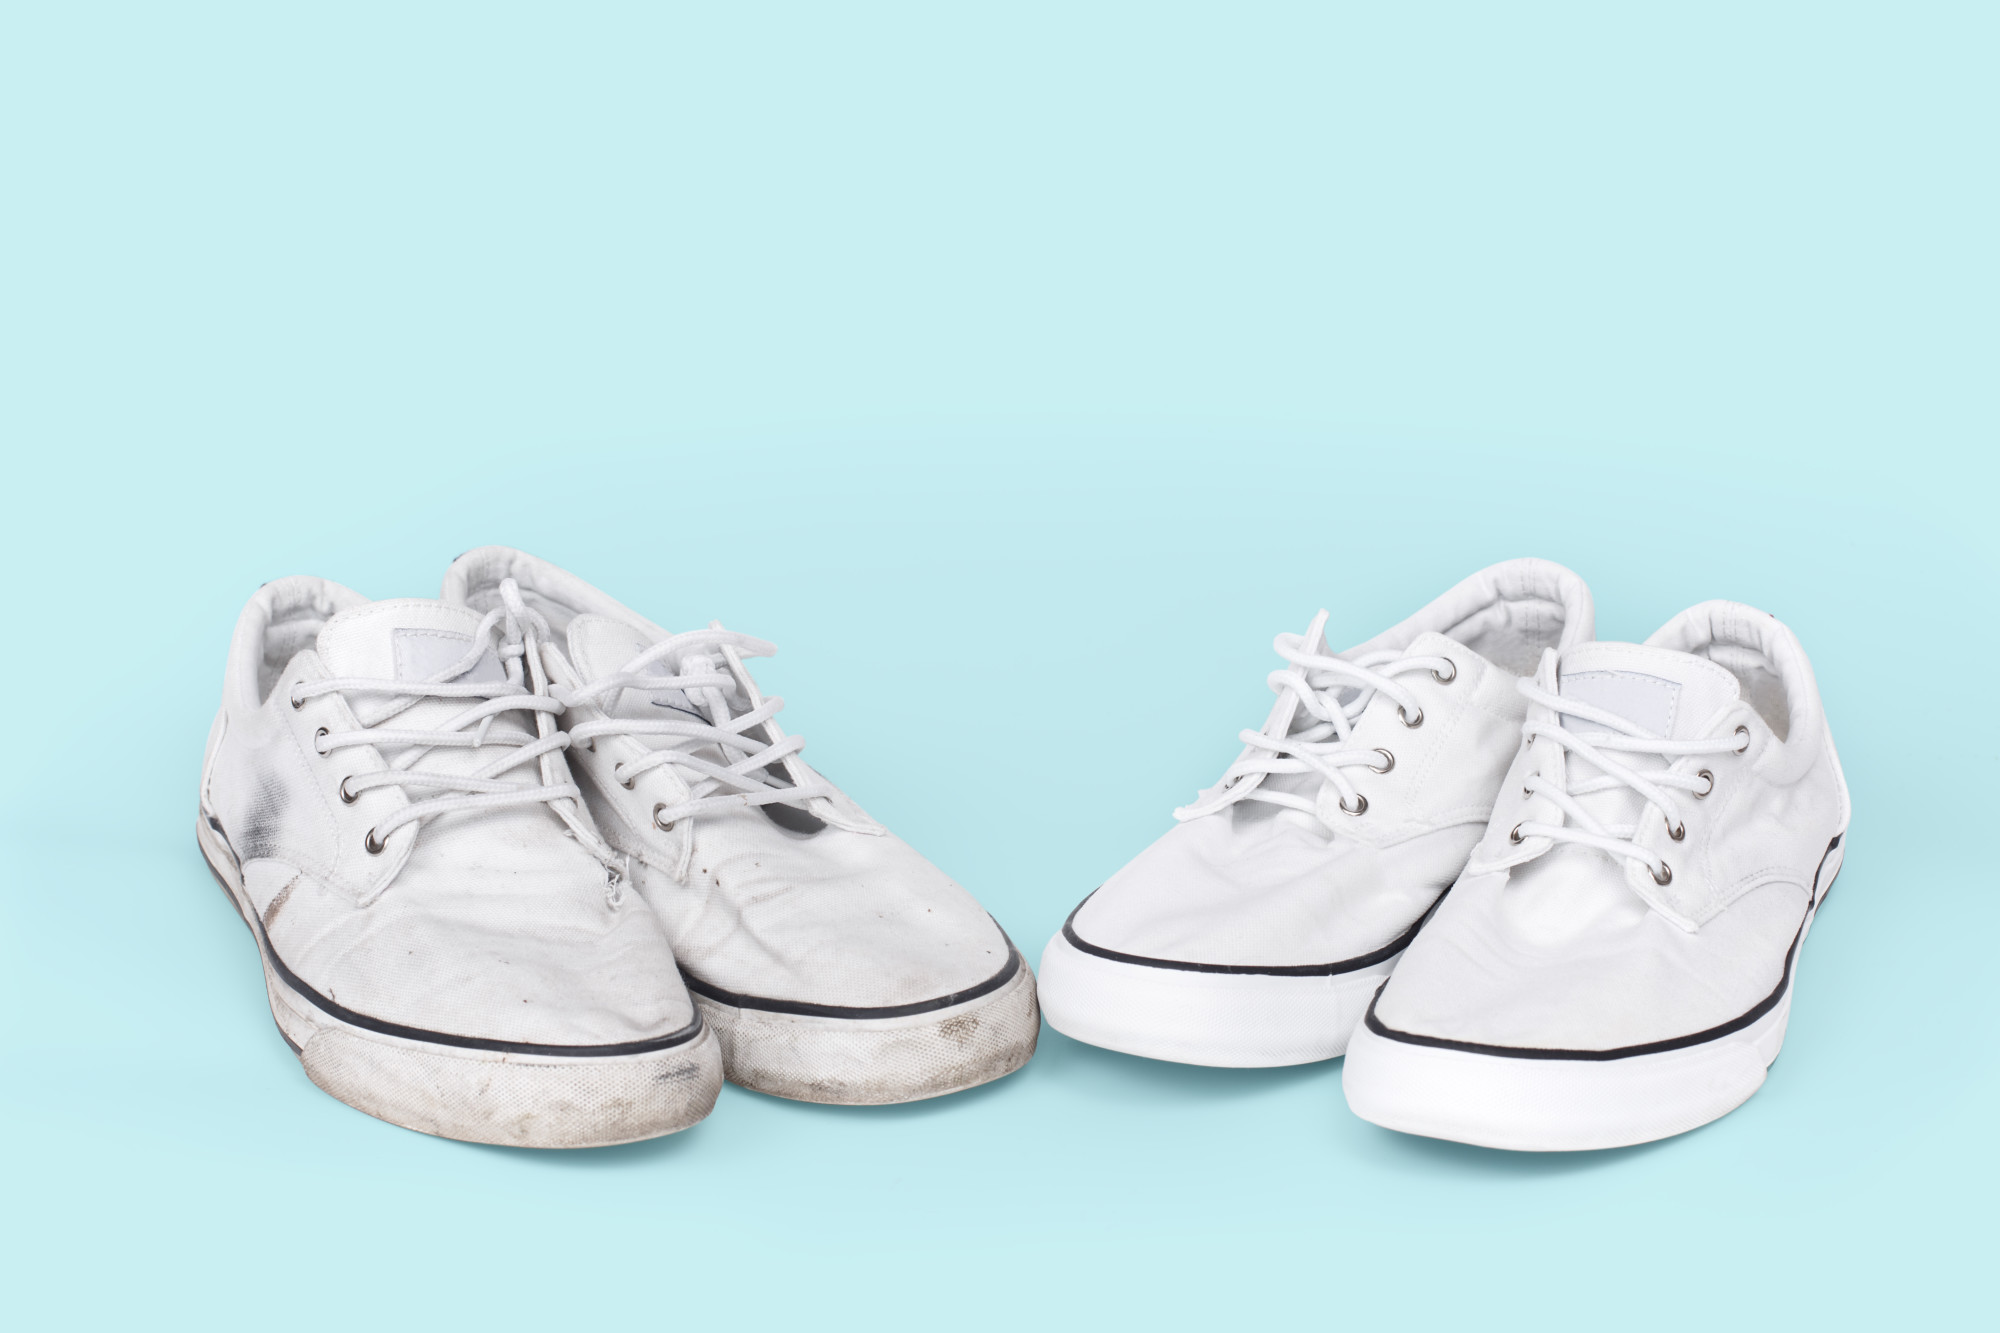 White Sneakers Are so Hot Right Now! 5 Tips for Cleaning White Shoes